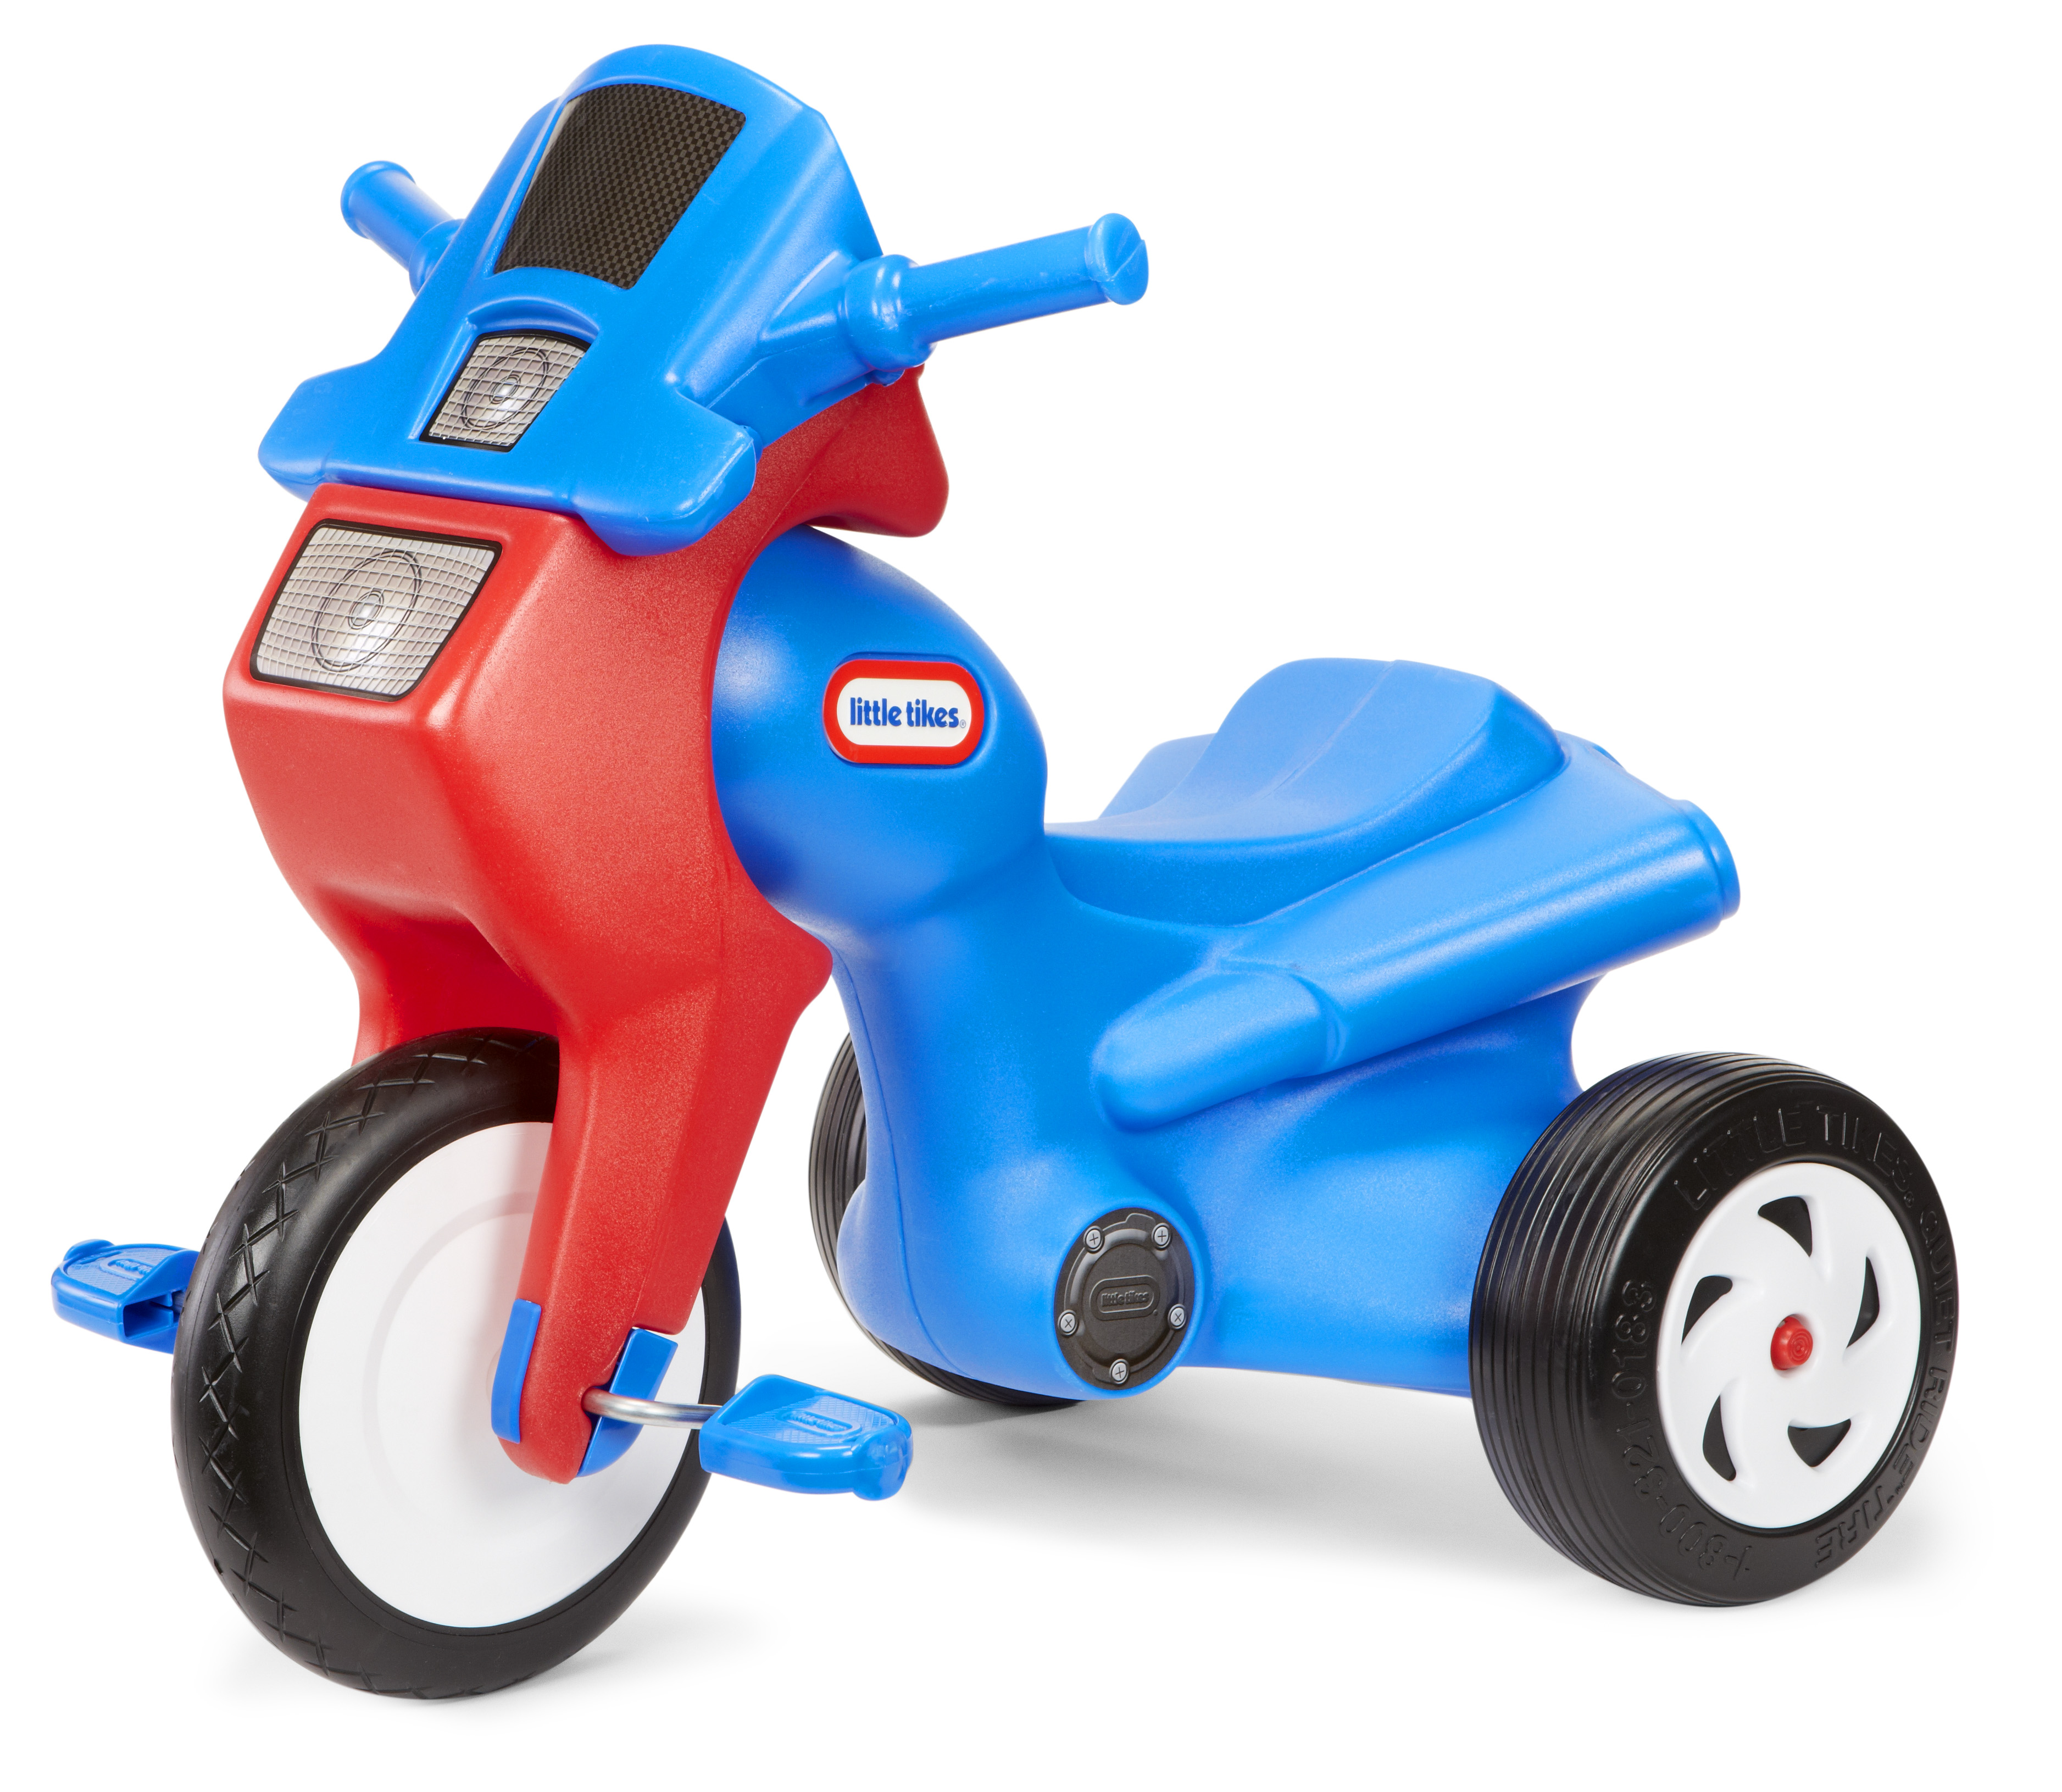 Little Tikes Classic Sport Cycle Ride On